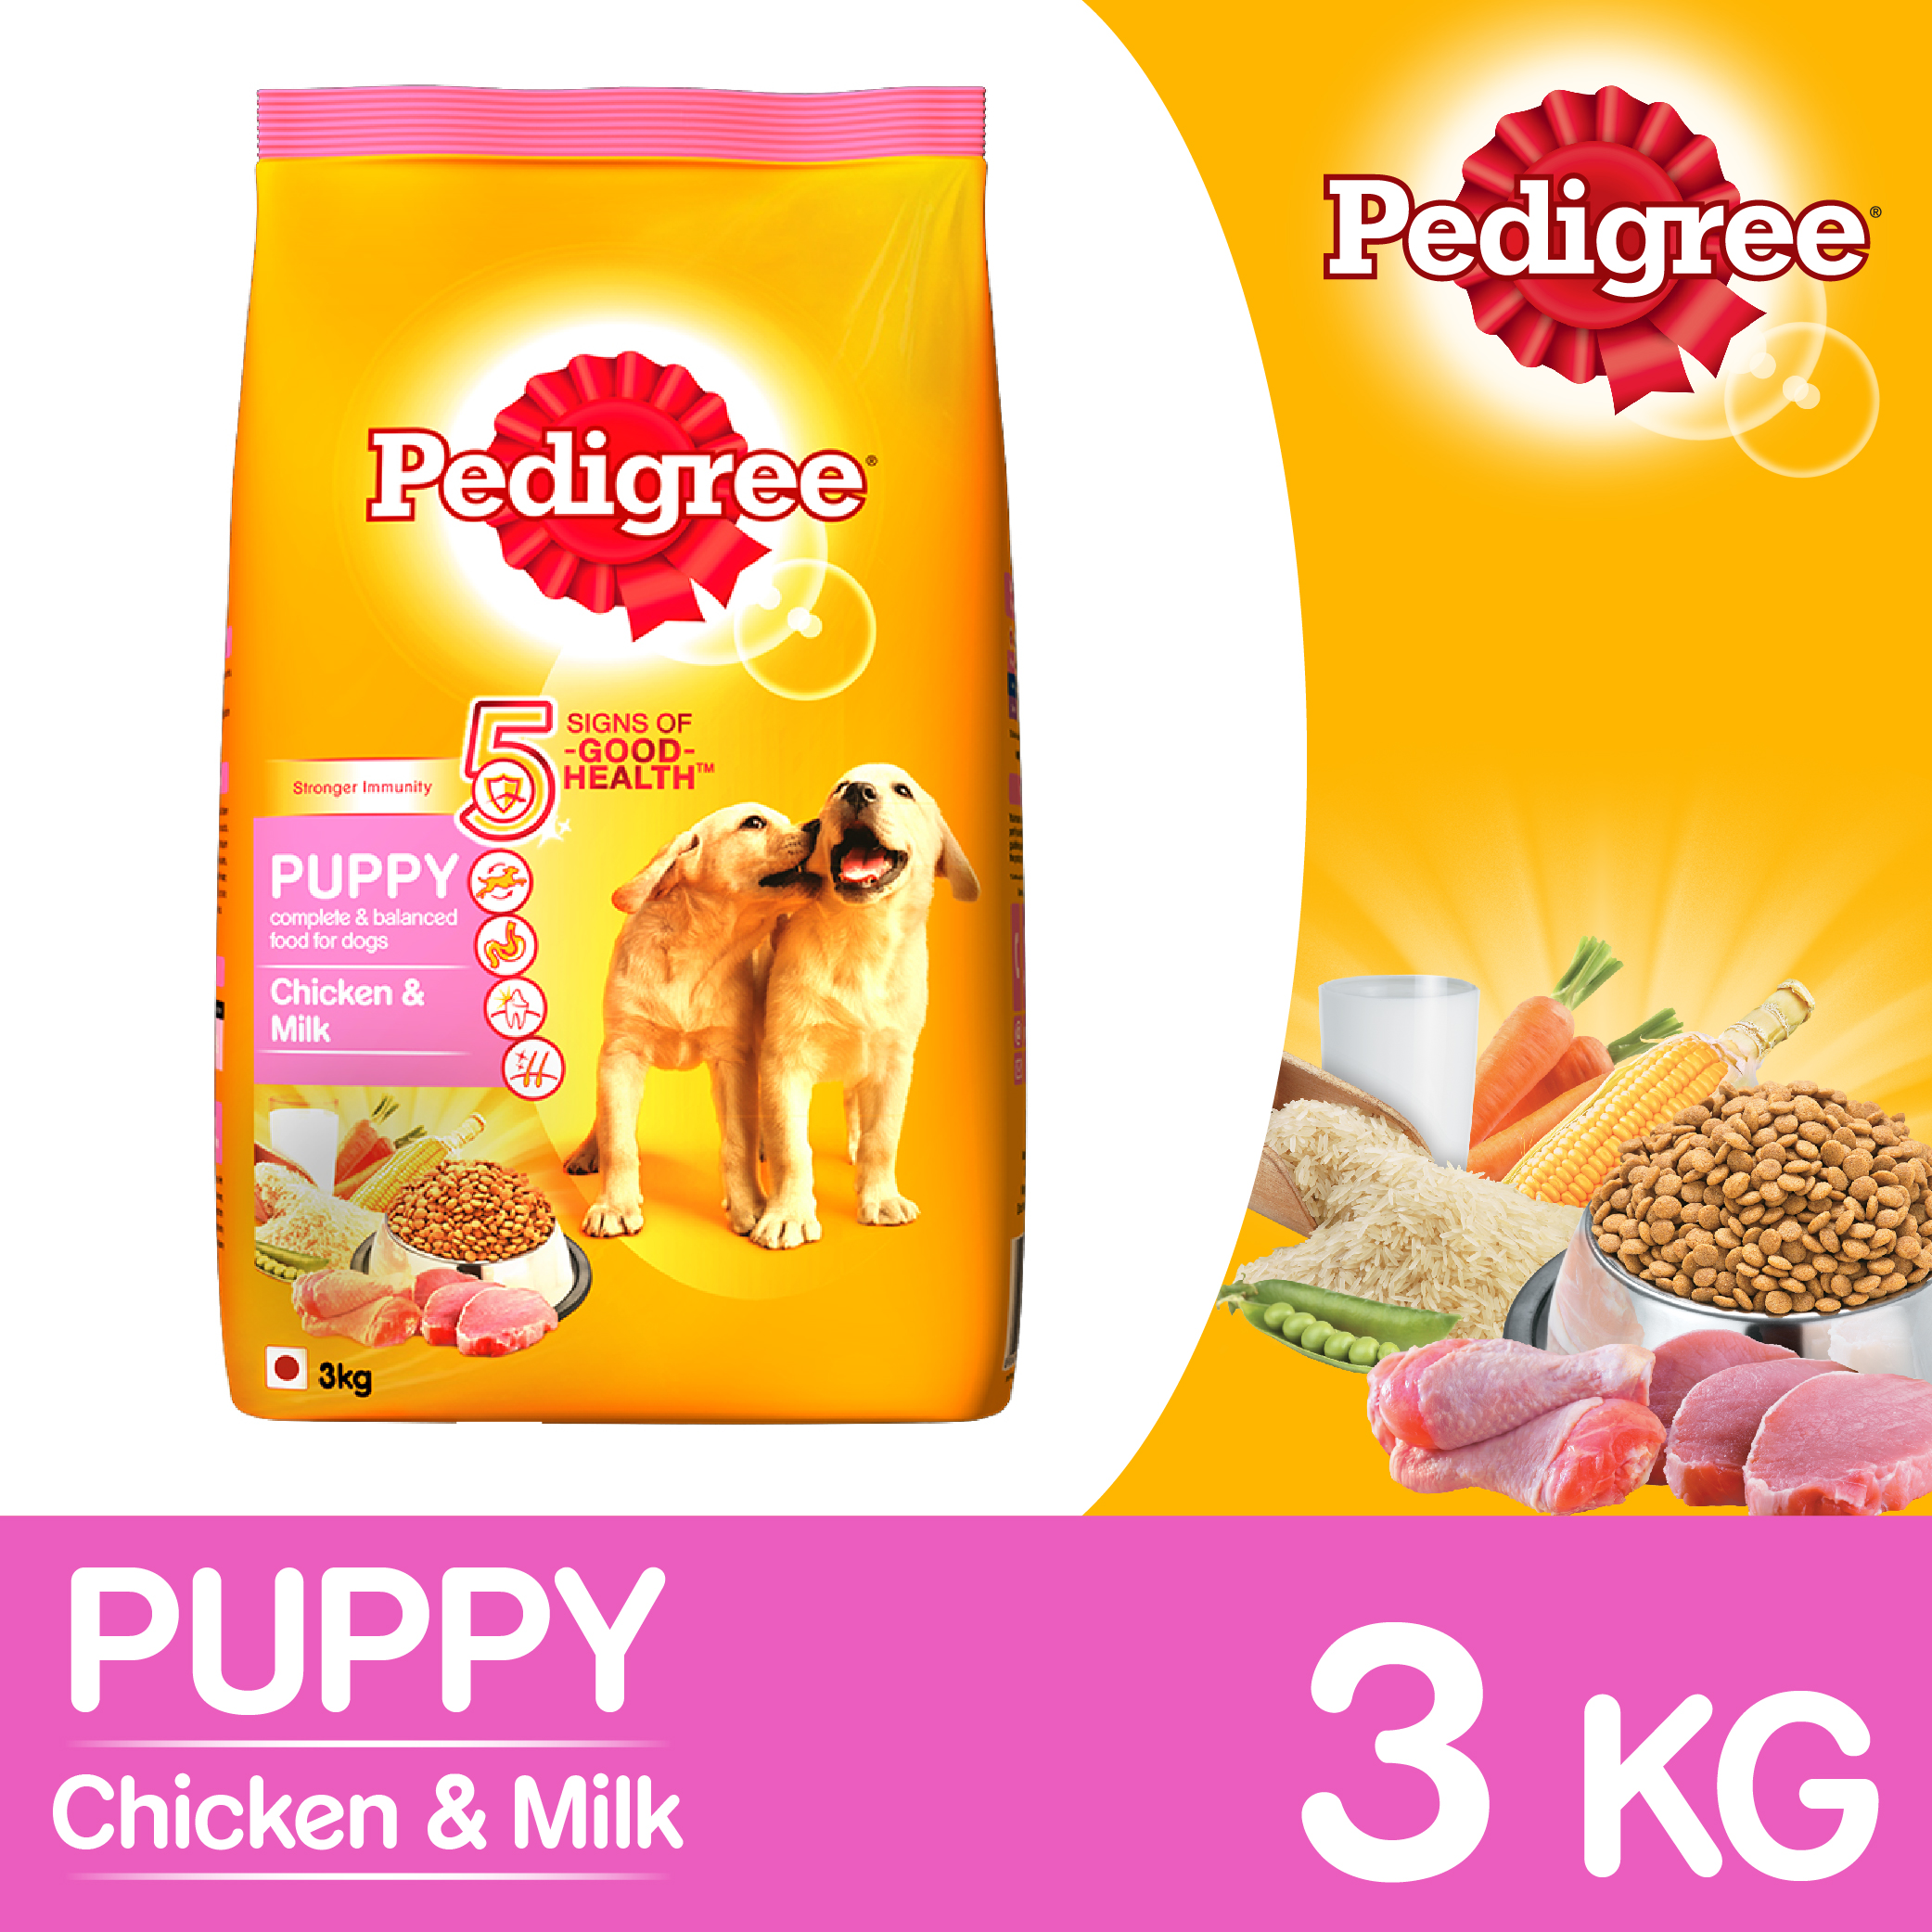 Pedigree Dog Food Prices In South Africa